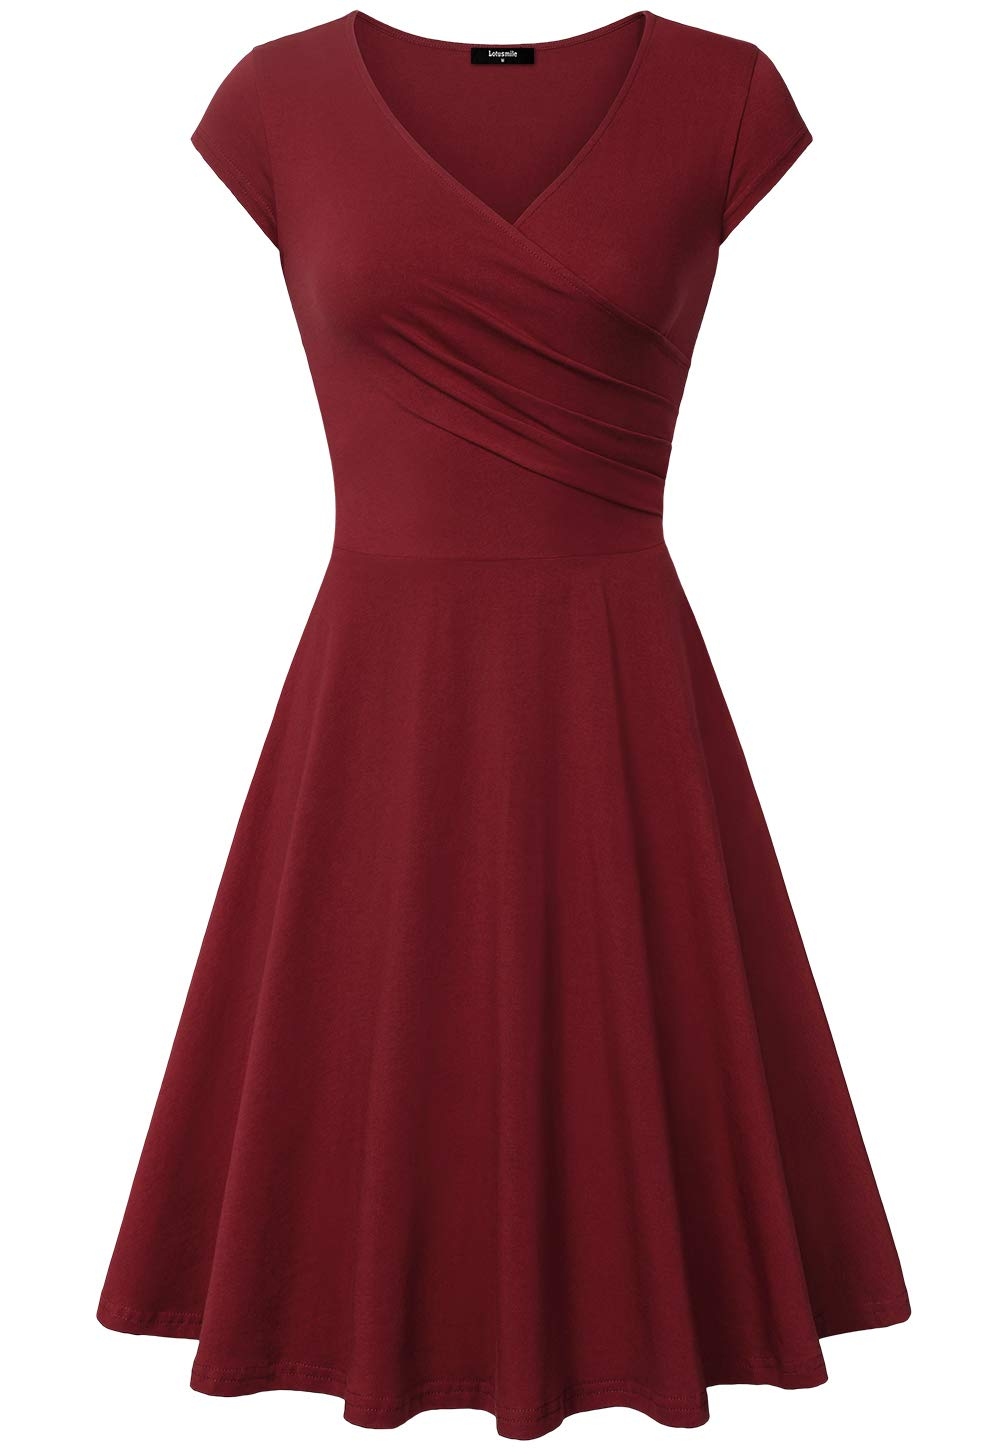 Laksmi Women's Plus Size v-Neck Solid Short-Sleeve Knee Fit-and-Flare Dress, Wine, XX-Large